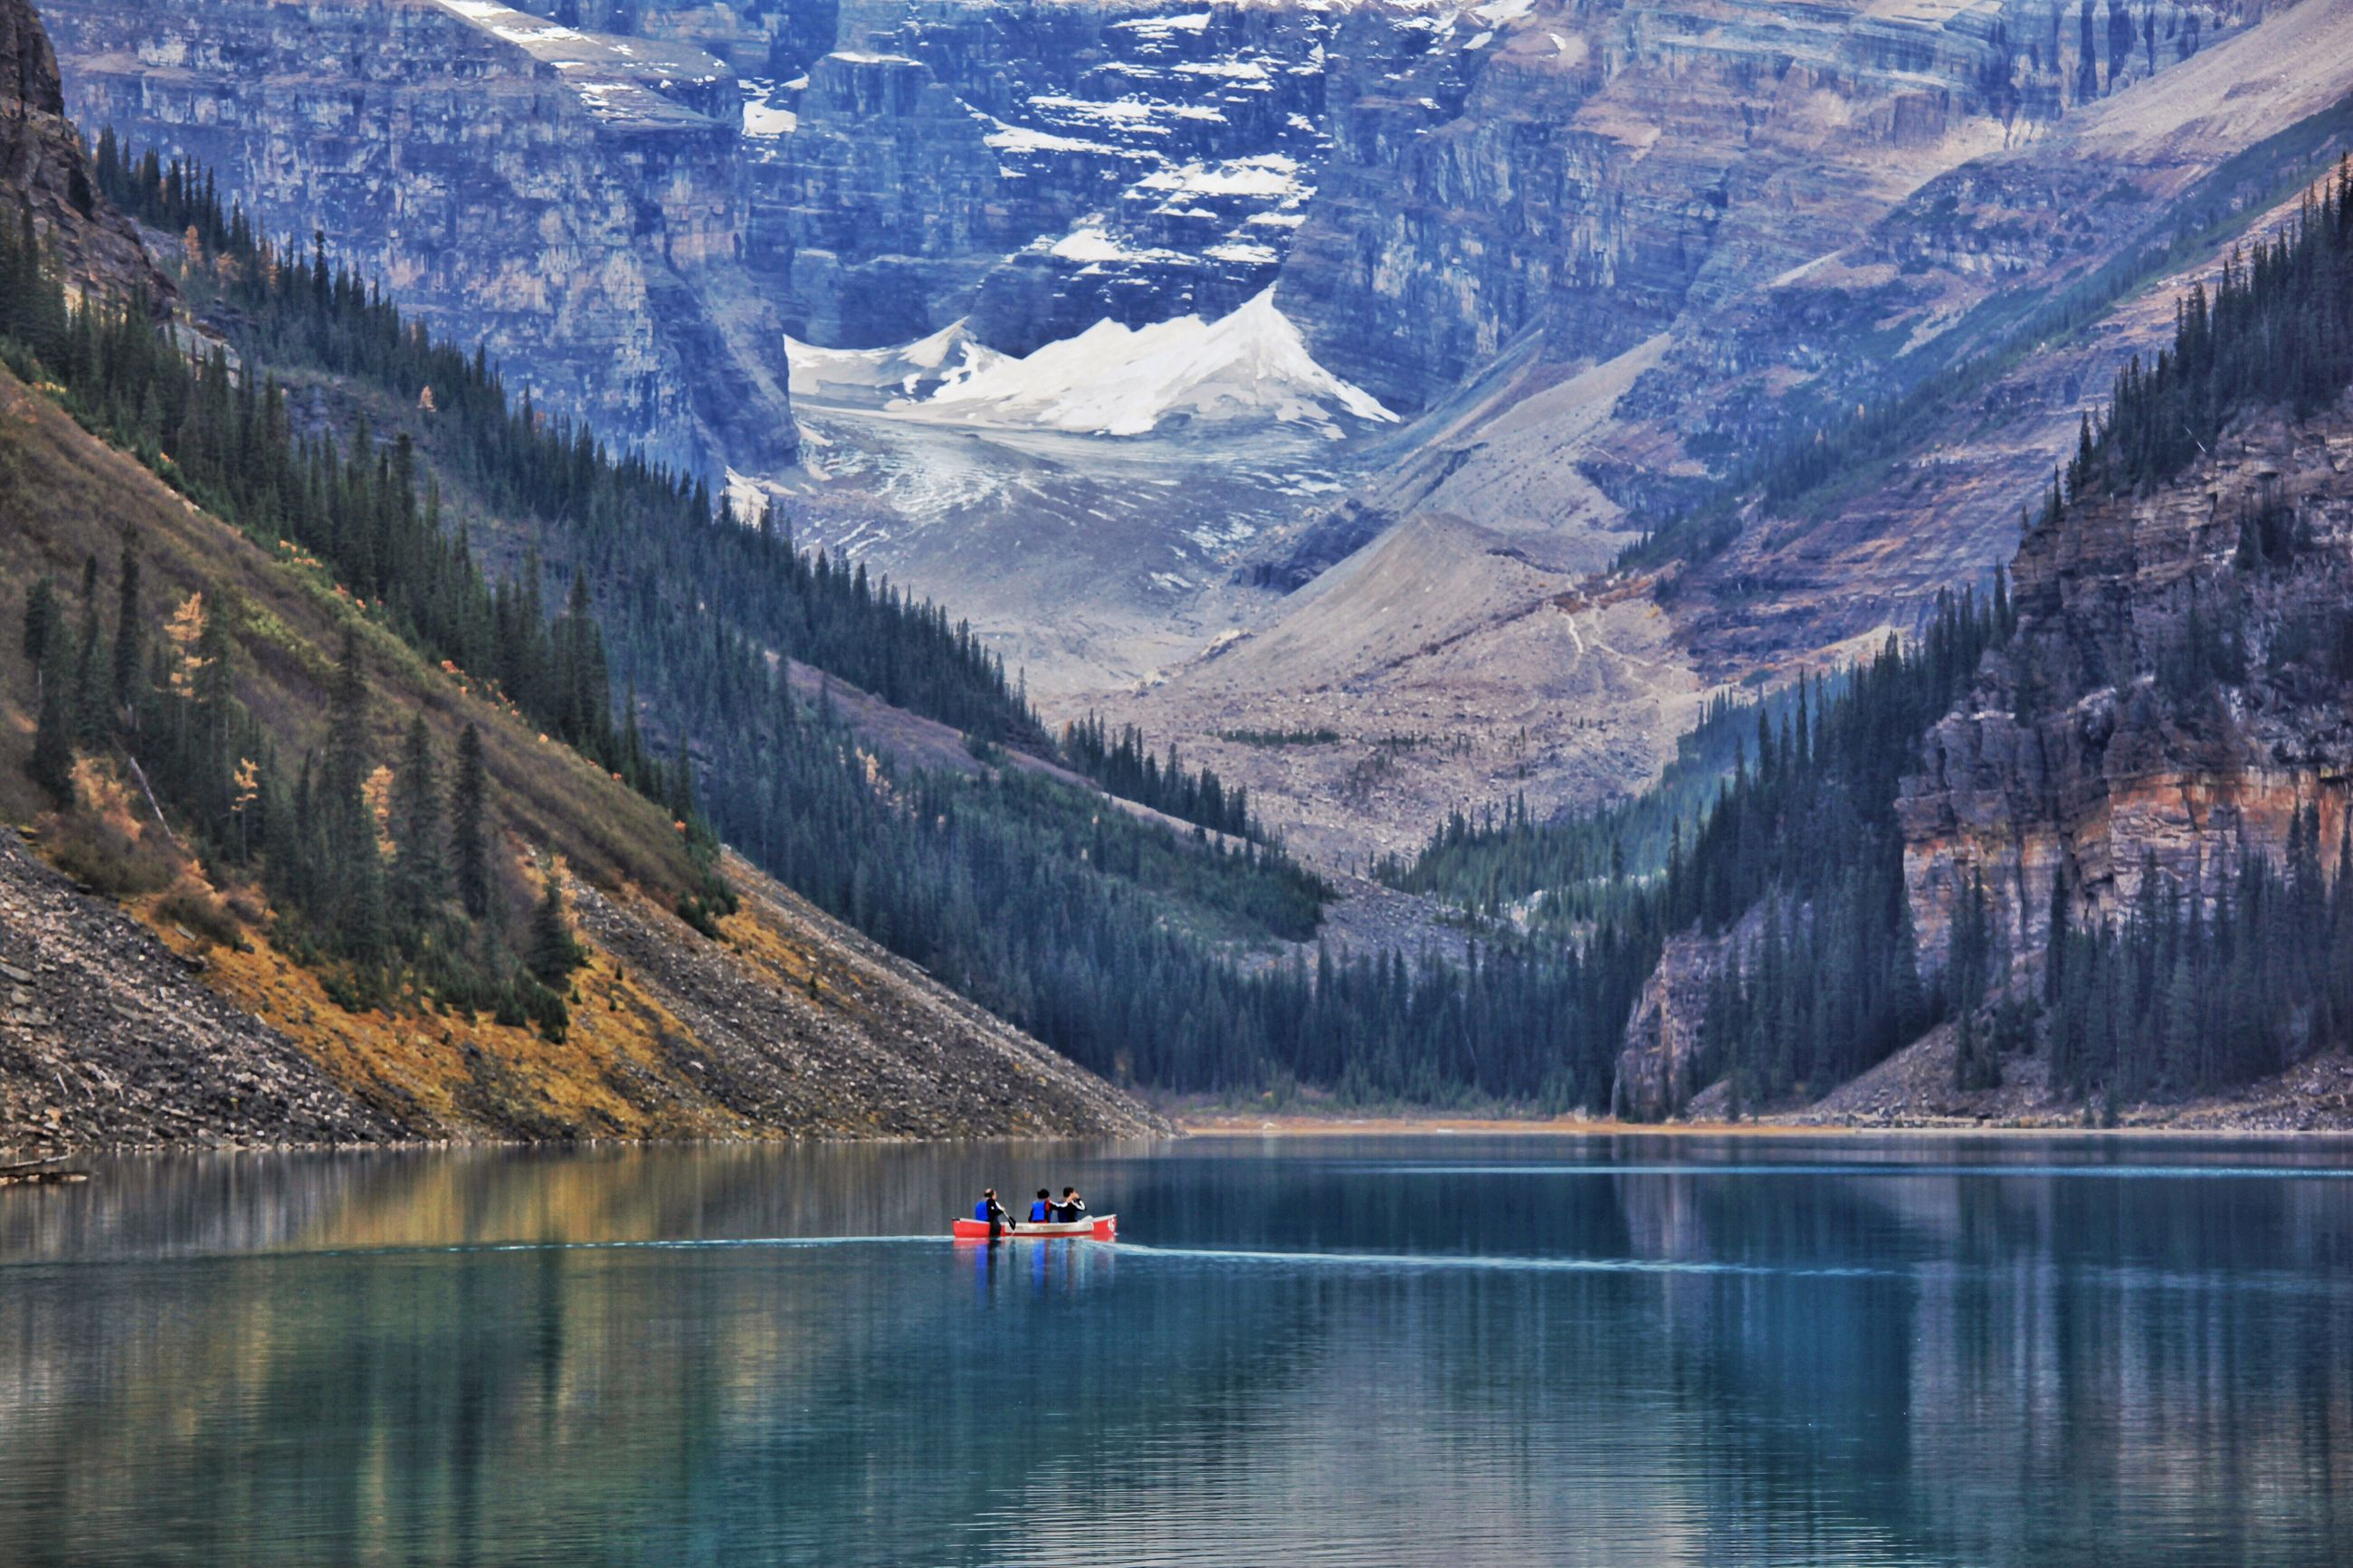 mountain, scenics, tranquil scene, tranquility, water, mountain range, beauty in nature, idyllic, lake, nature, waterfront, majestic, remote, non-urban scene, physical geography, calm, valley, day, outdoors, geology, tourism, no people, rocky mountains, wilderness, green color